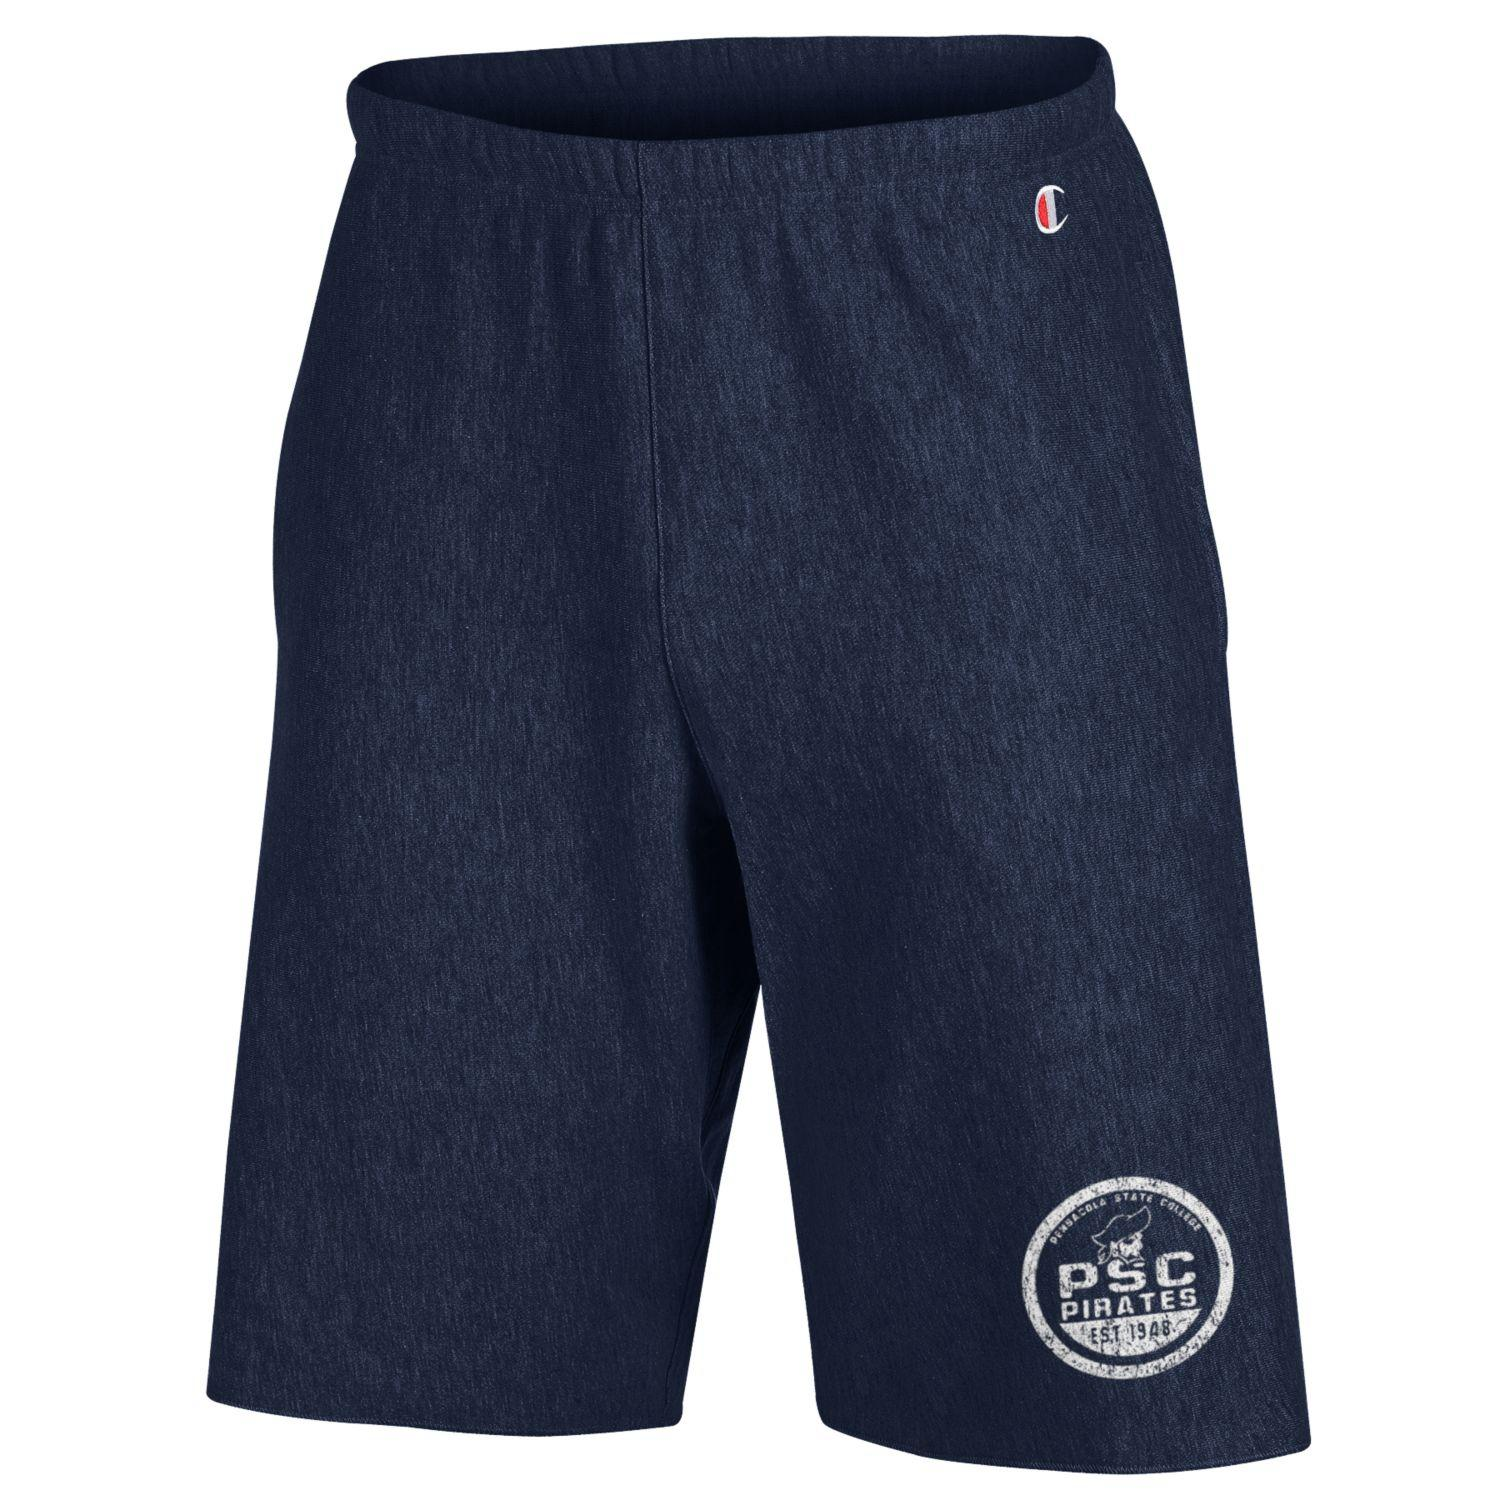 PSC REVERSE WEAVE TERRY SHORTS